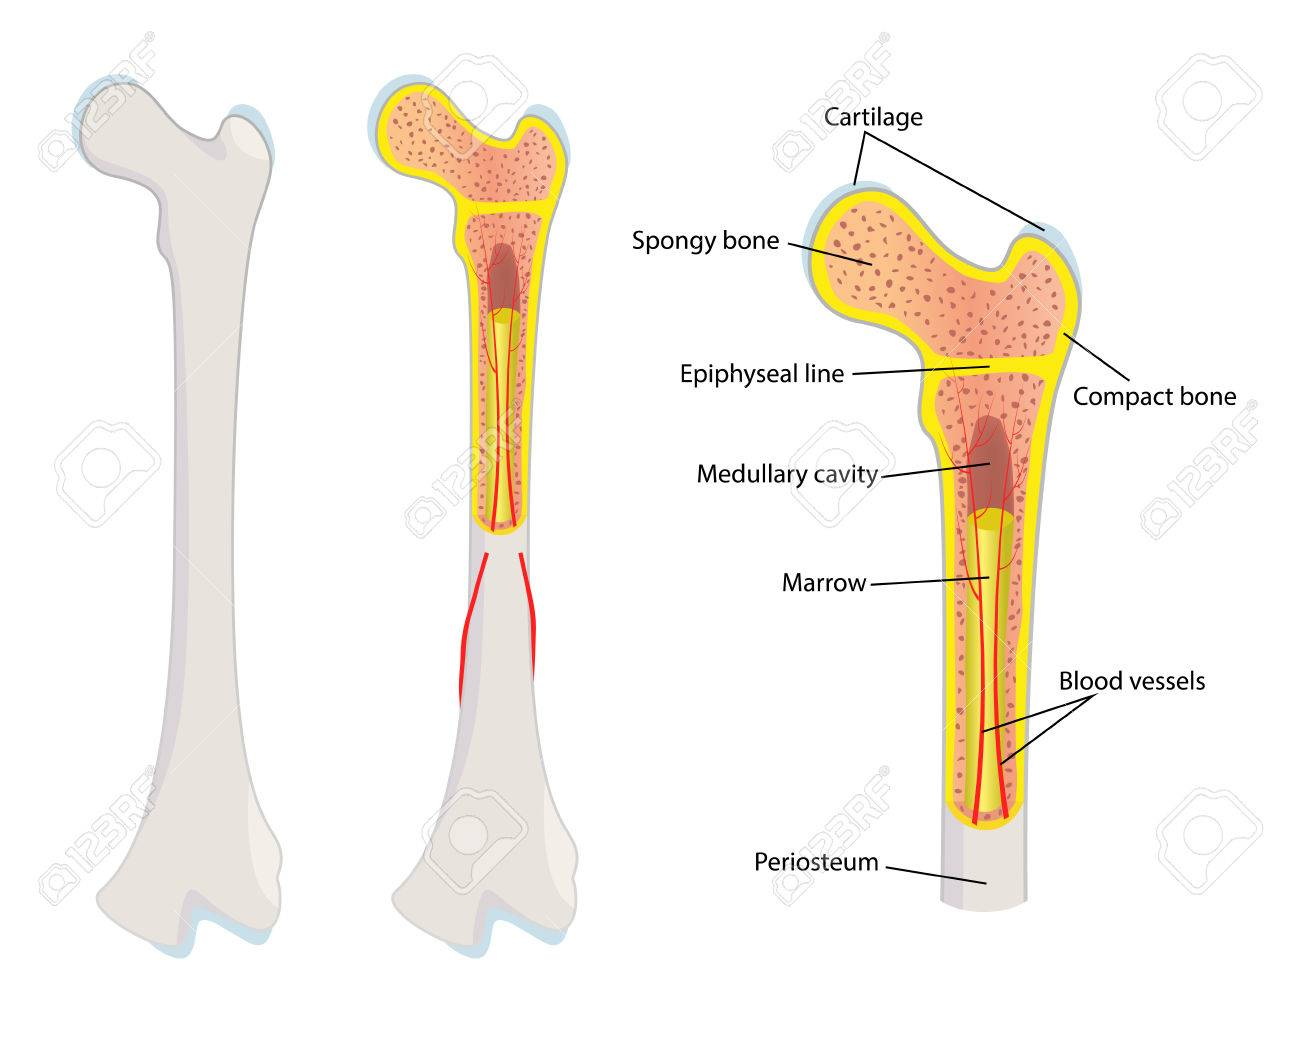 Human Bone Anatomy Illustration Royalty Free Cliparts Vectors And